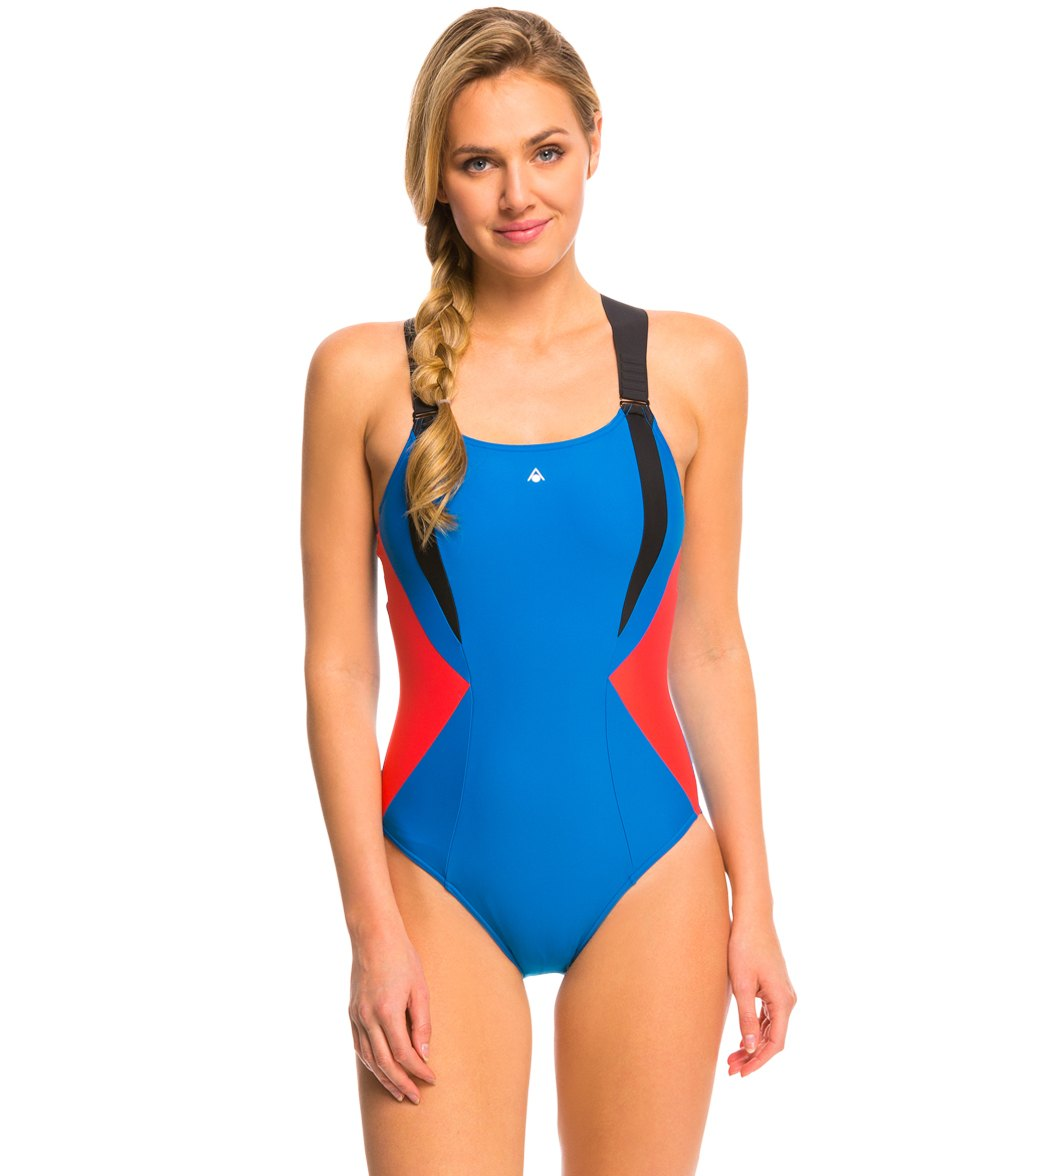 59d0584ee1 Aqua Sphere Siskin One Piece Swimsuit at SwimOutlet.com - Free Shipping